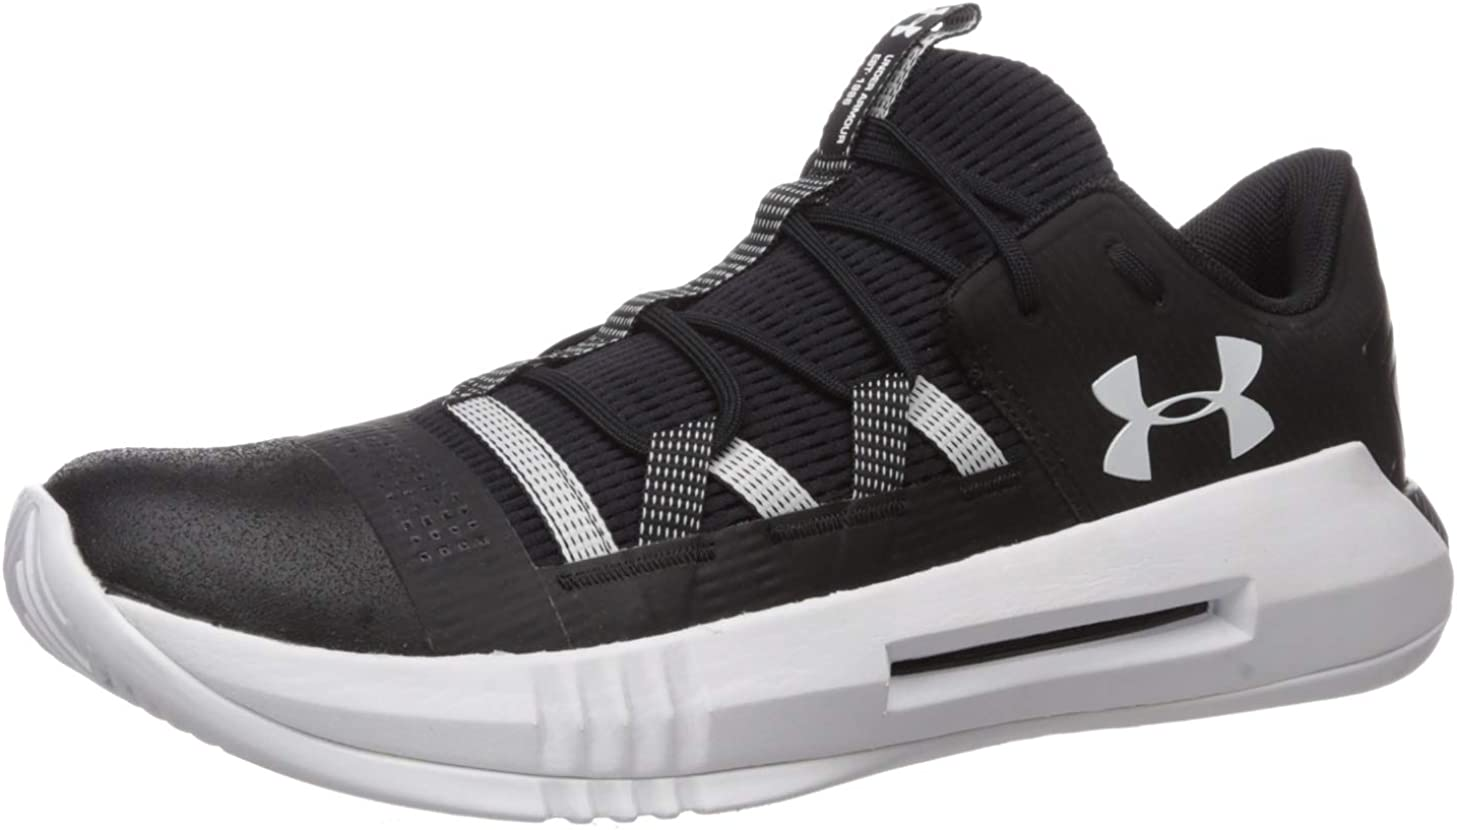 Under Armour Women's Block Shoe City Volleyball Fixed price for sale 2.0 Free shipping